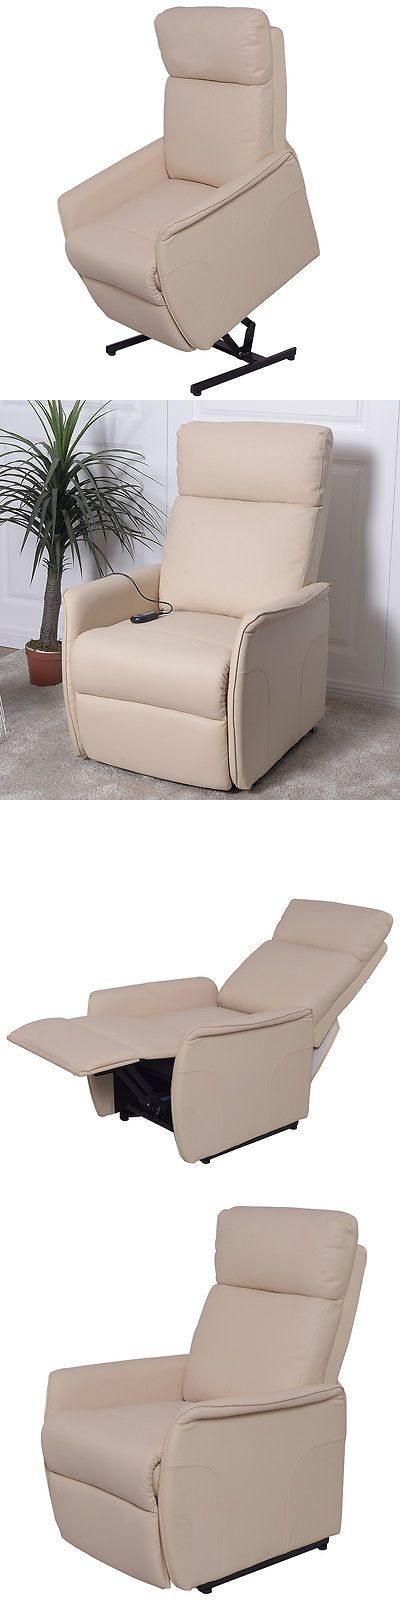 Stairlifts and Elevators: Electric Power Lift Chair Recliner Sofa Pu Leather Padded Seat Living Room Beige -> BUY IT NOW ONLY: $259.99 on eBay!